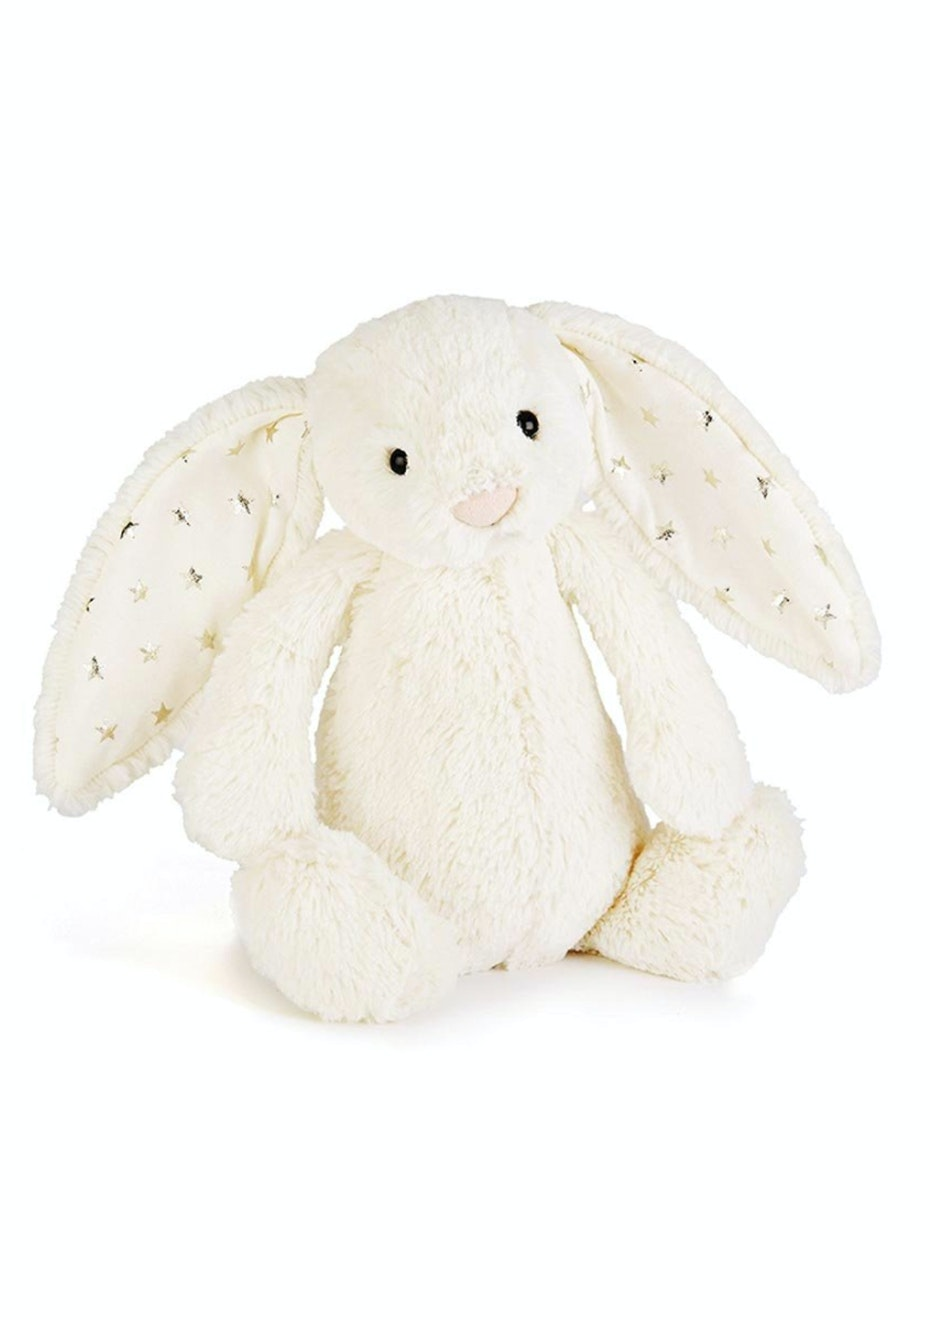 Jellycat - Bashful Twinkle Bunny Medium